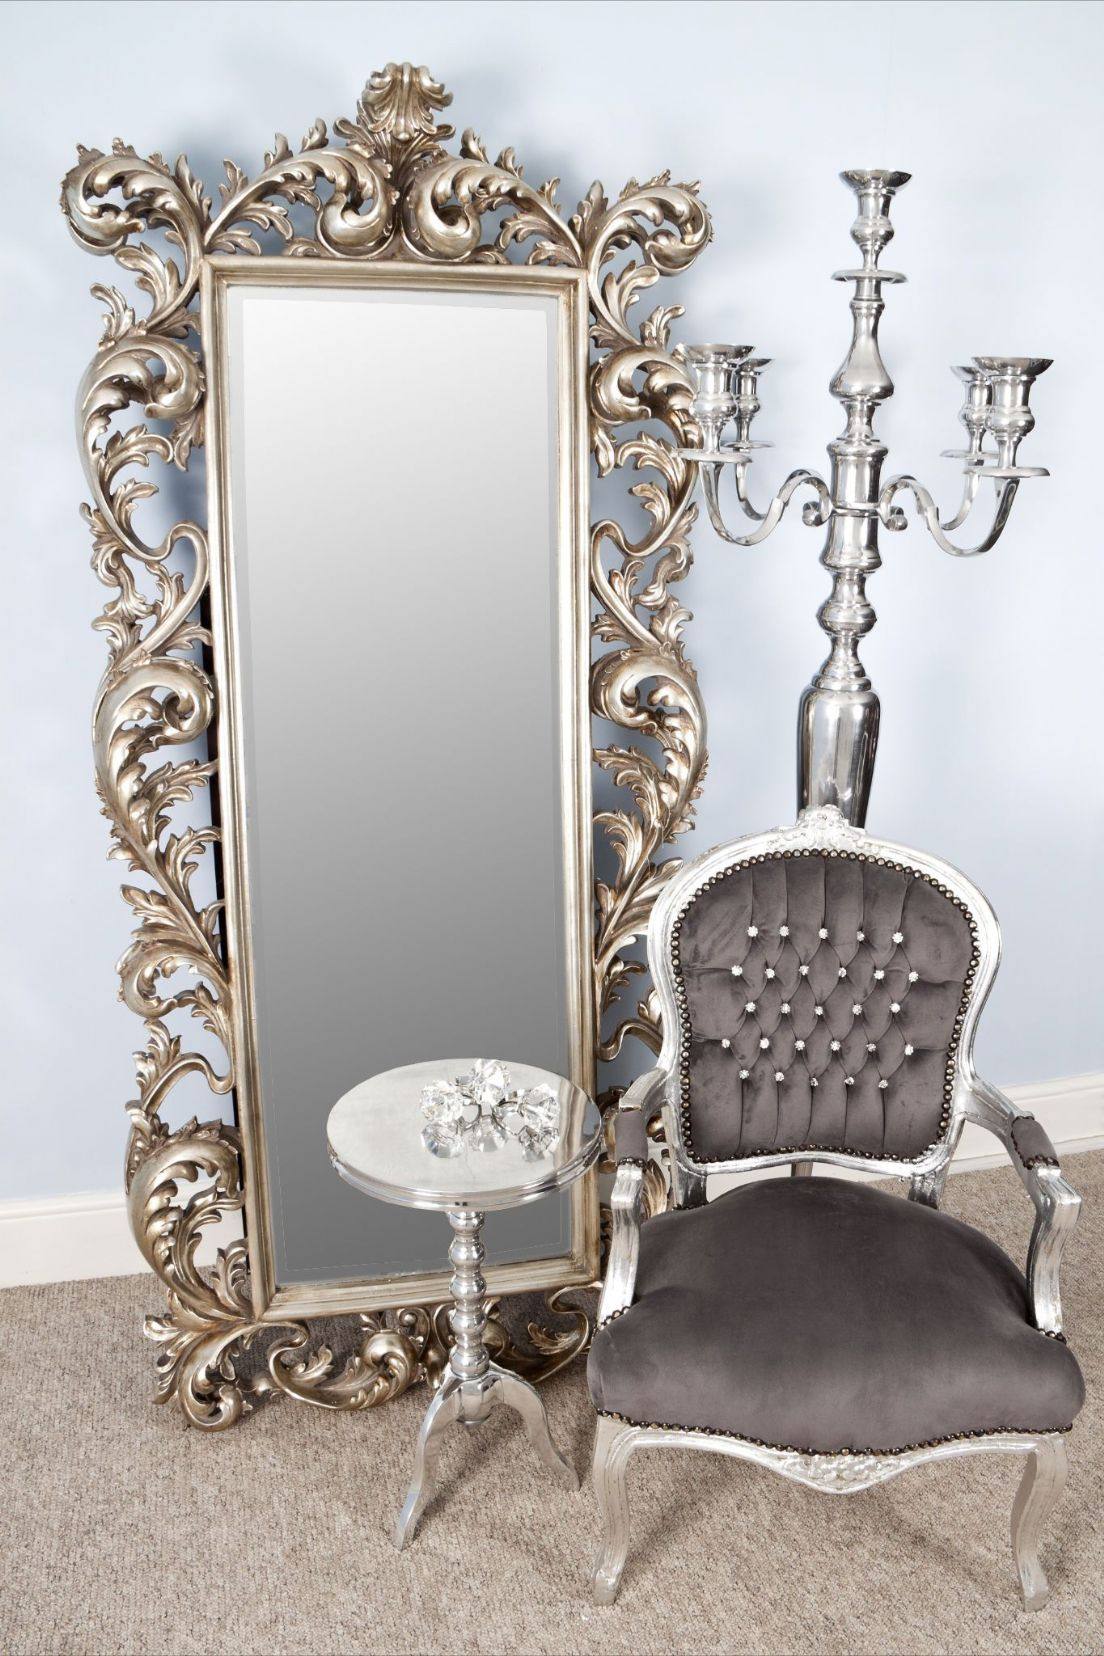 Appealing Oversized Mirrors for Home Decoration Ideas: Full Length Mirror Ikea | Antique Mirrors For Sale | Oversized Mirrors